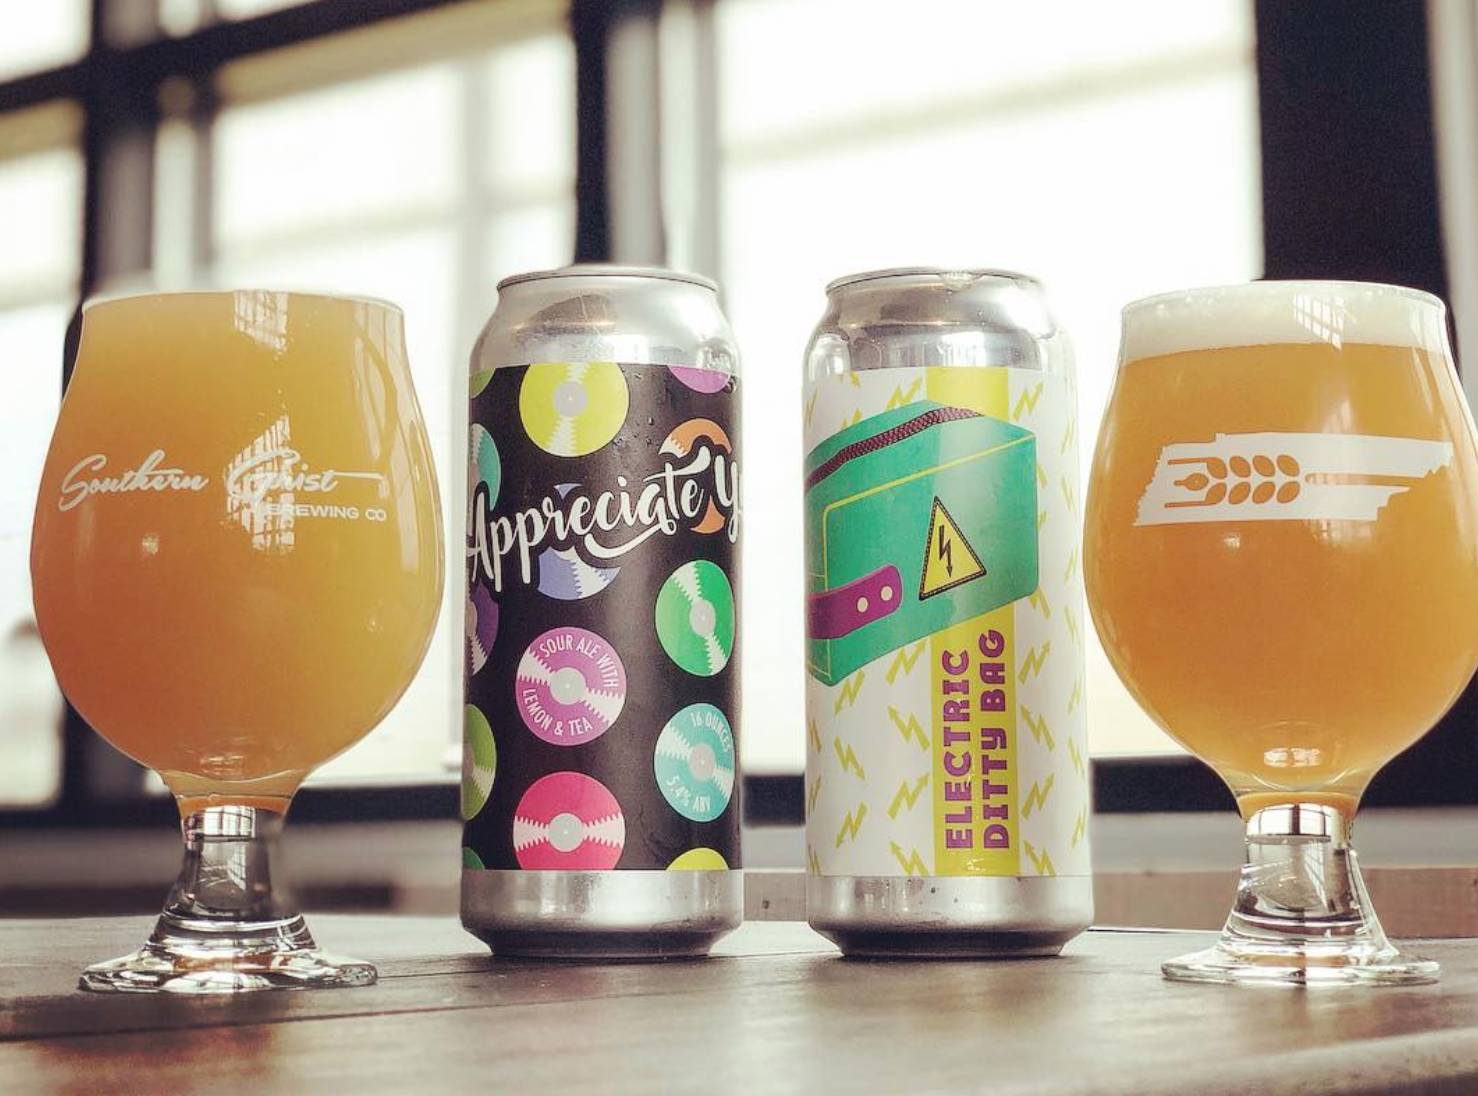 Southern Grist Brewing Co. (East)